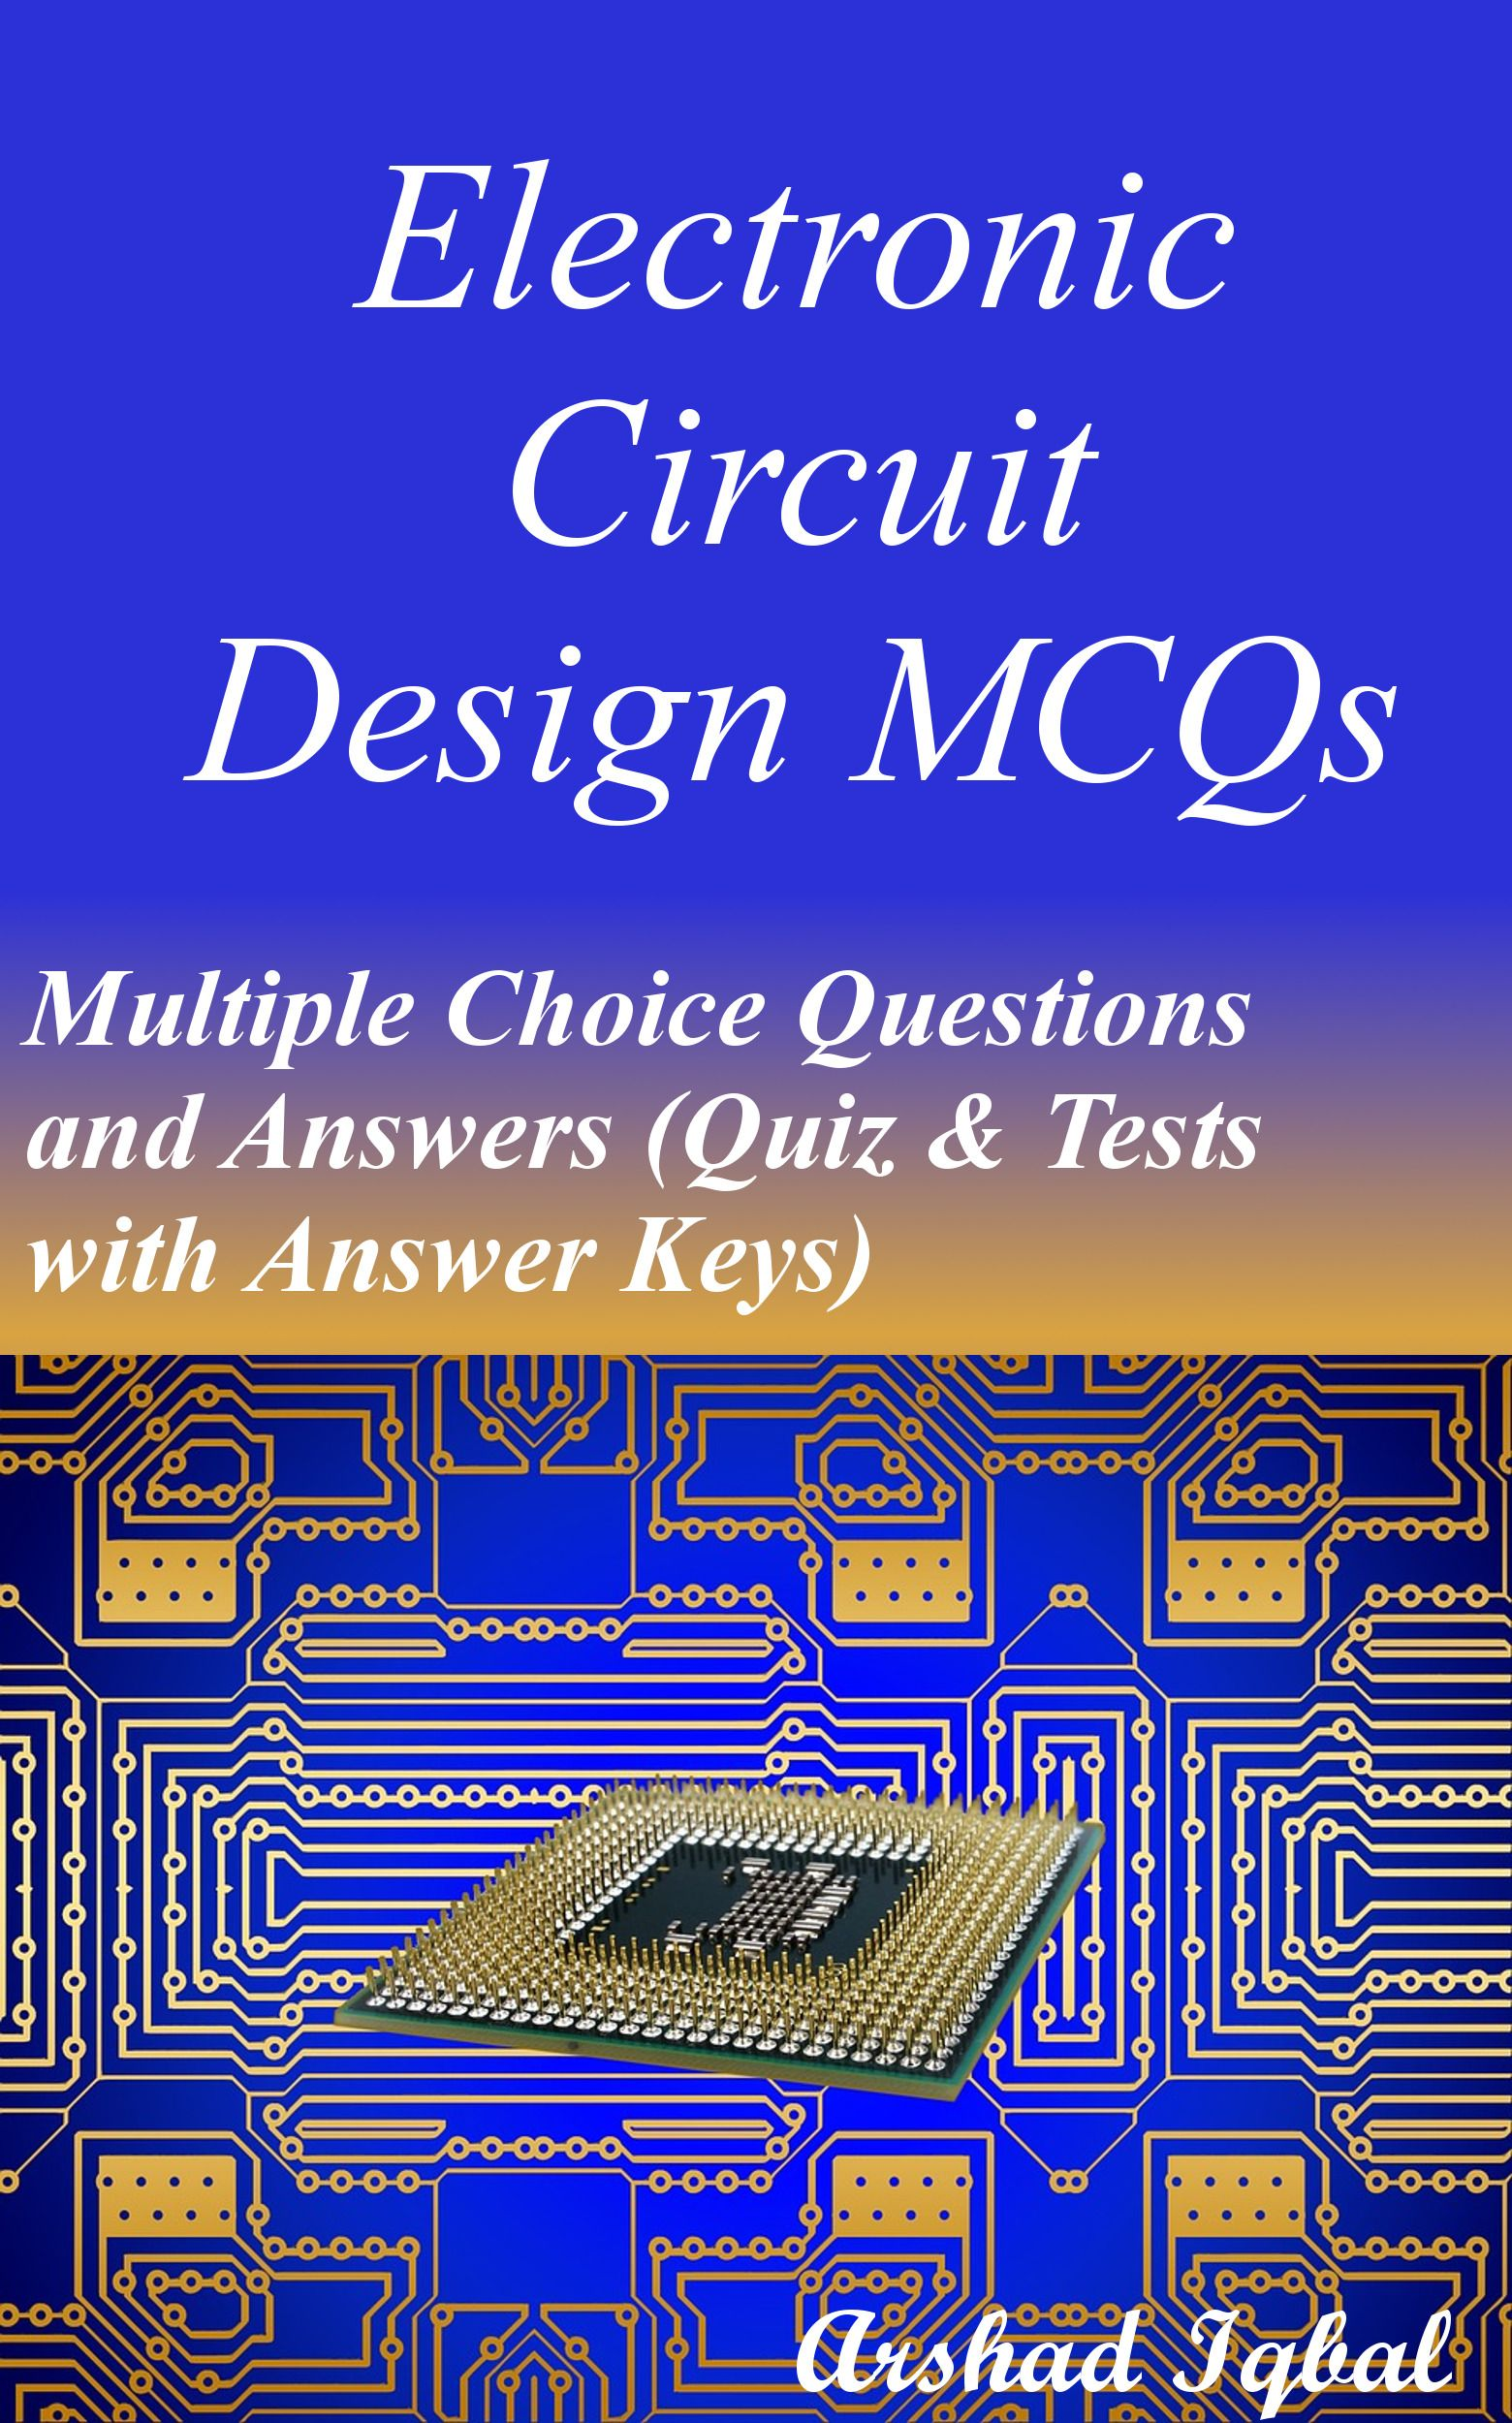 electronic circuit design mcqs has 320 multiple choice questions